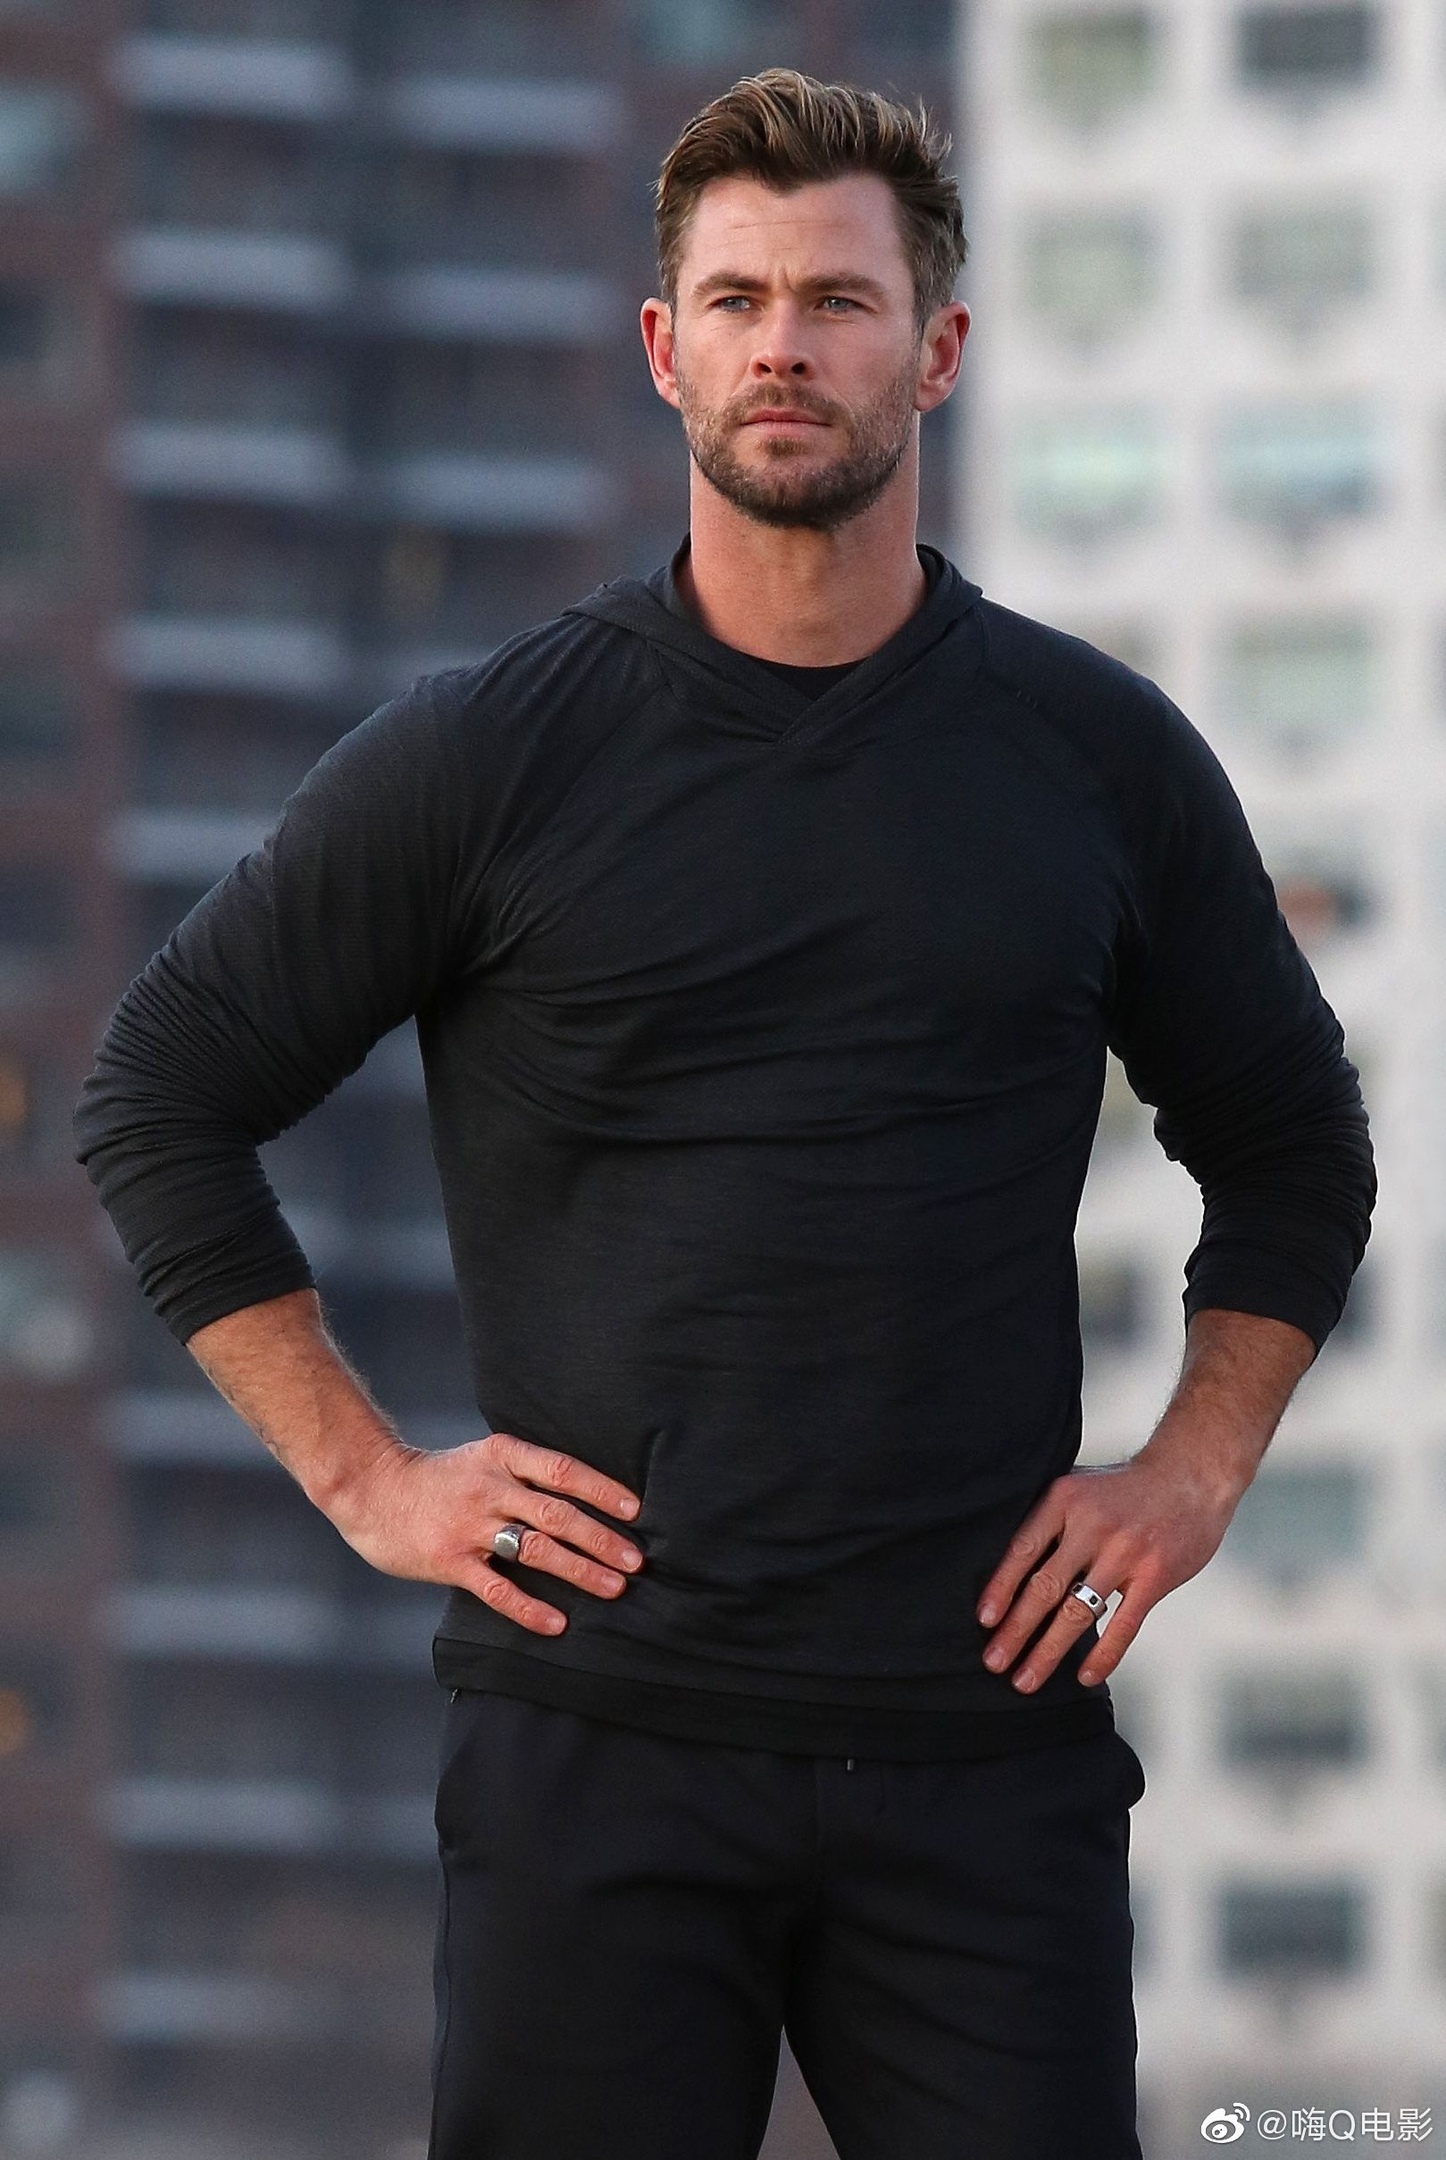 Chris Hemsworth photo #944765